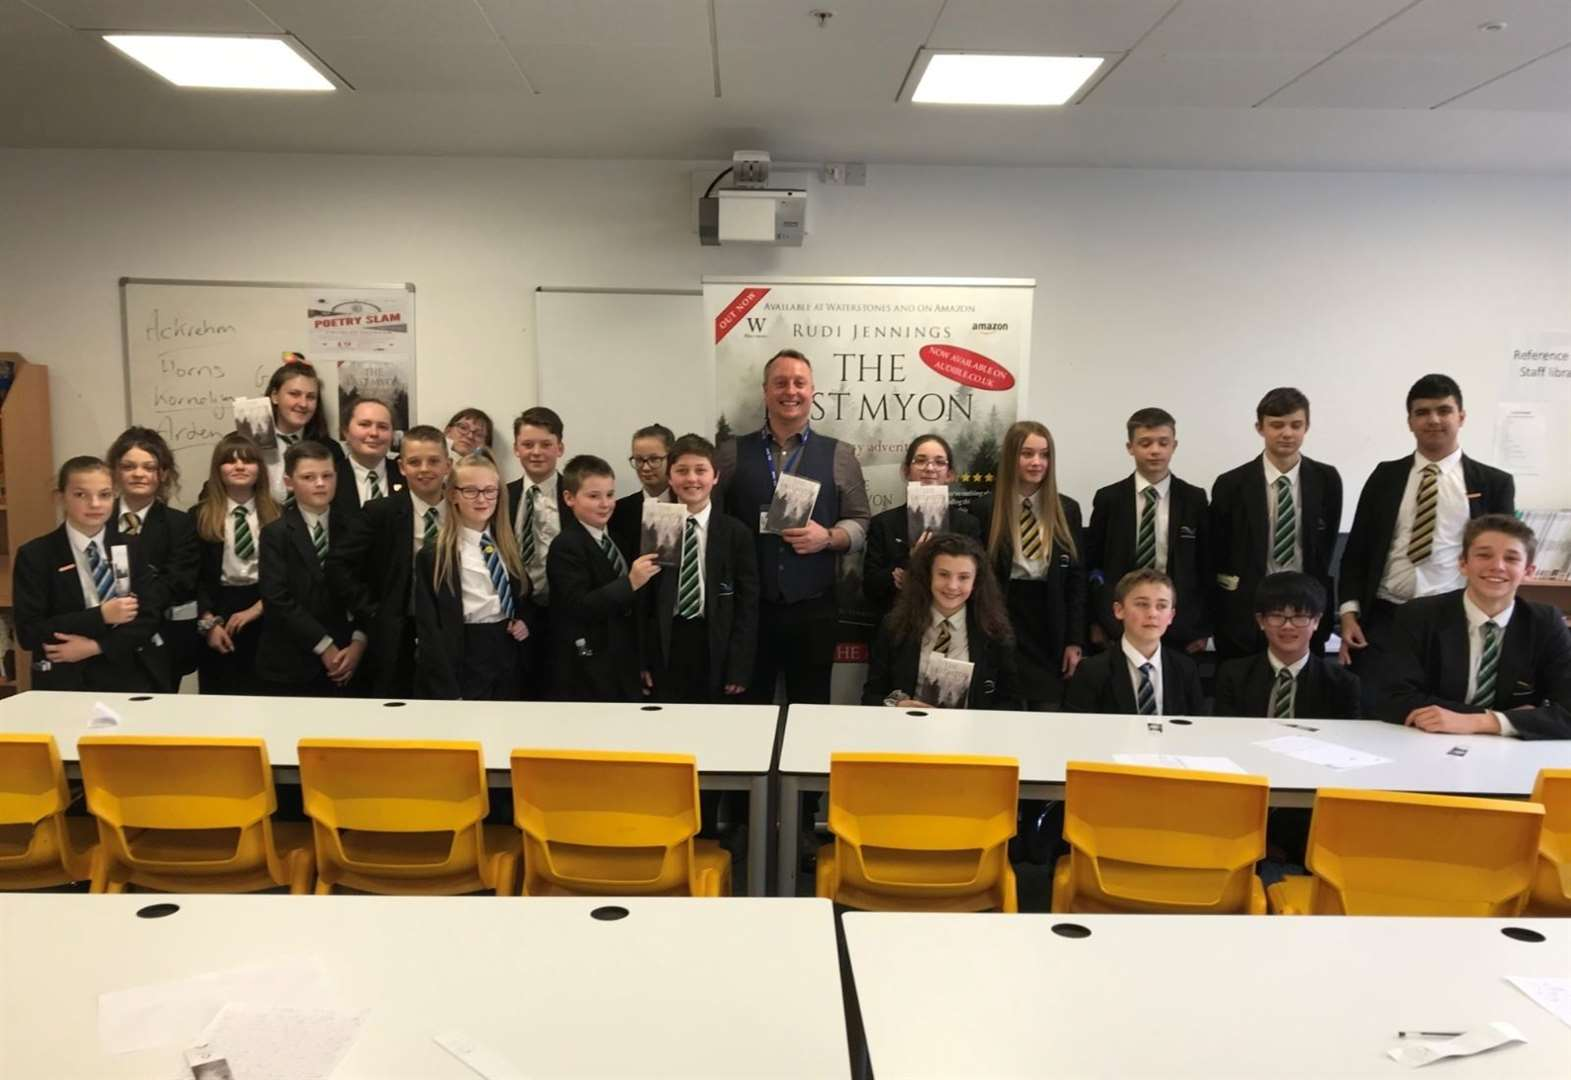 Author visit sparks creativity at Thomas Clarkson Academy in Wisbech